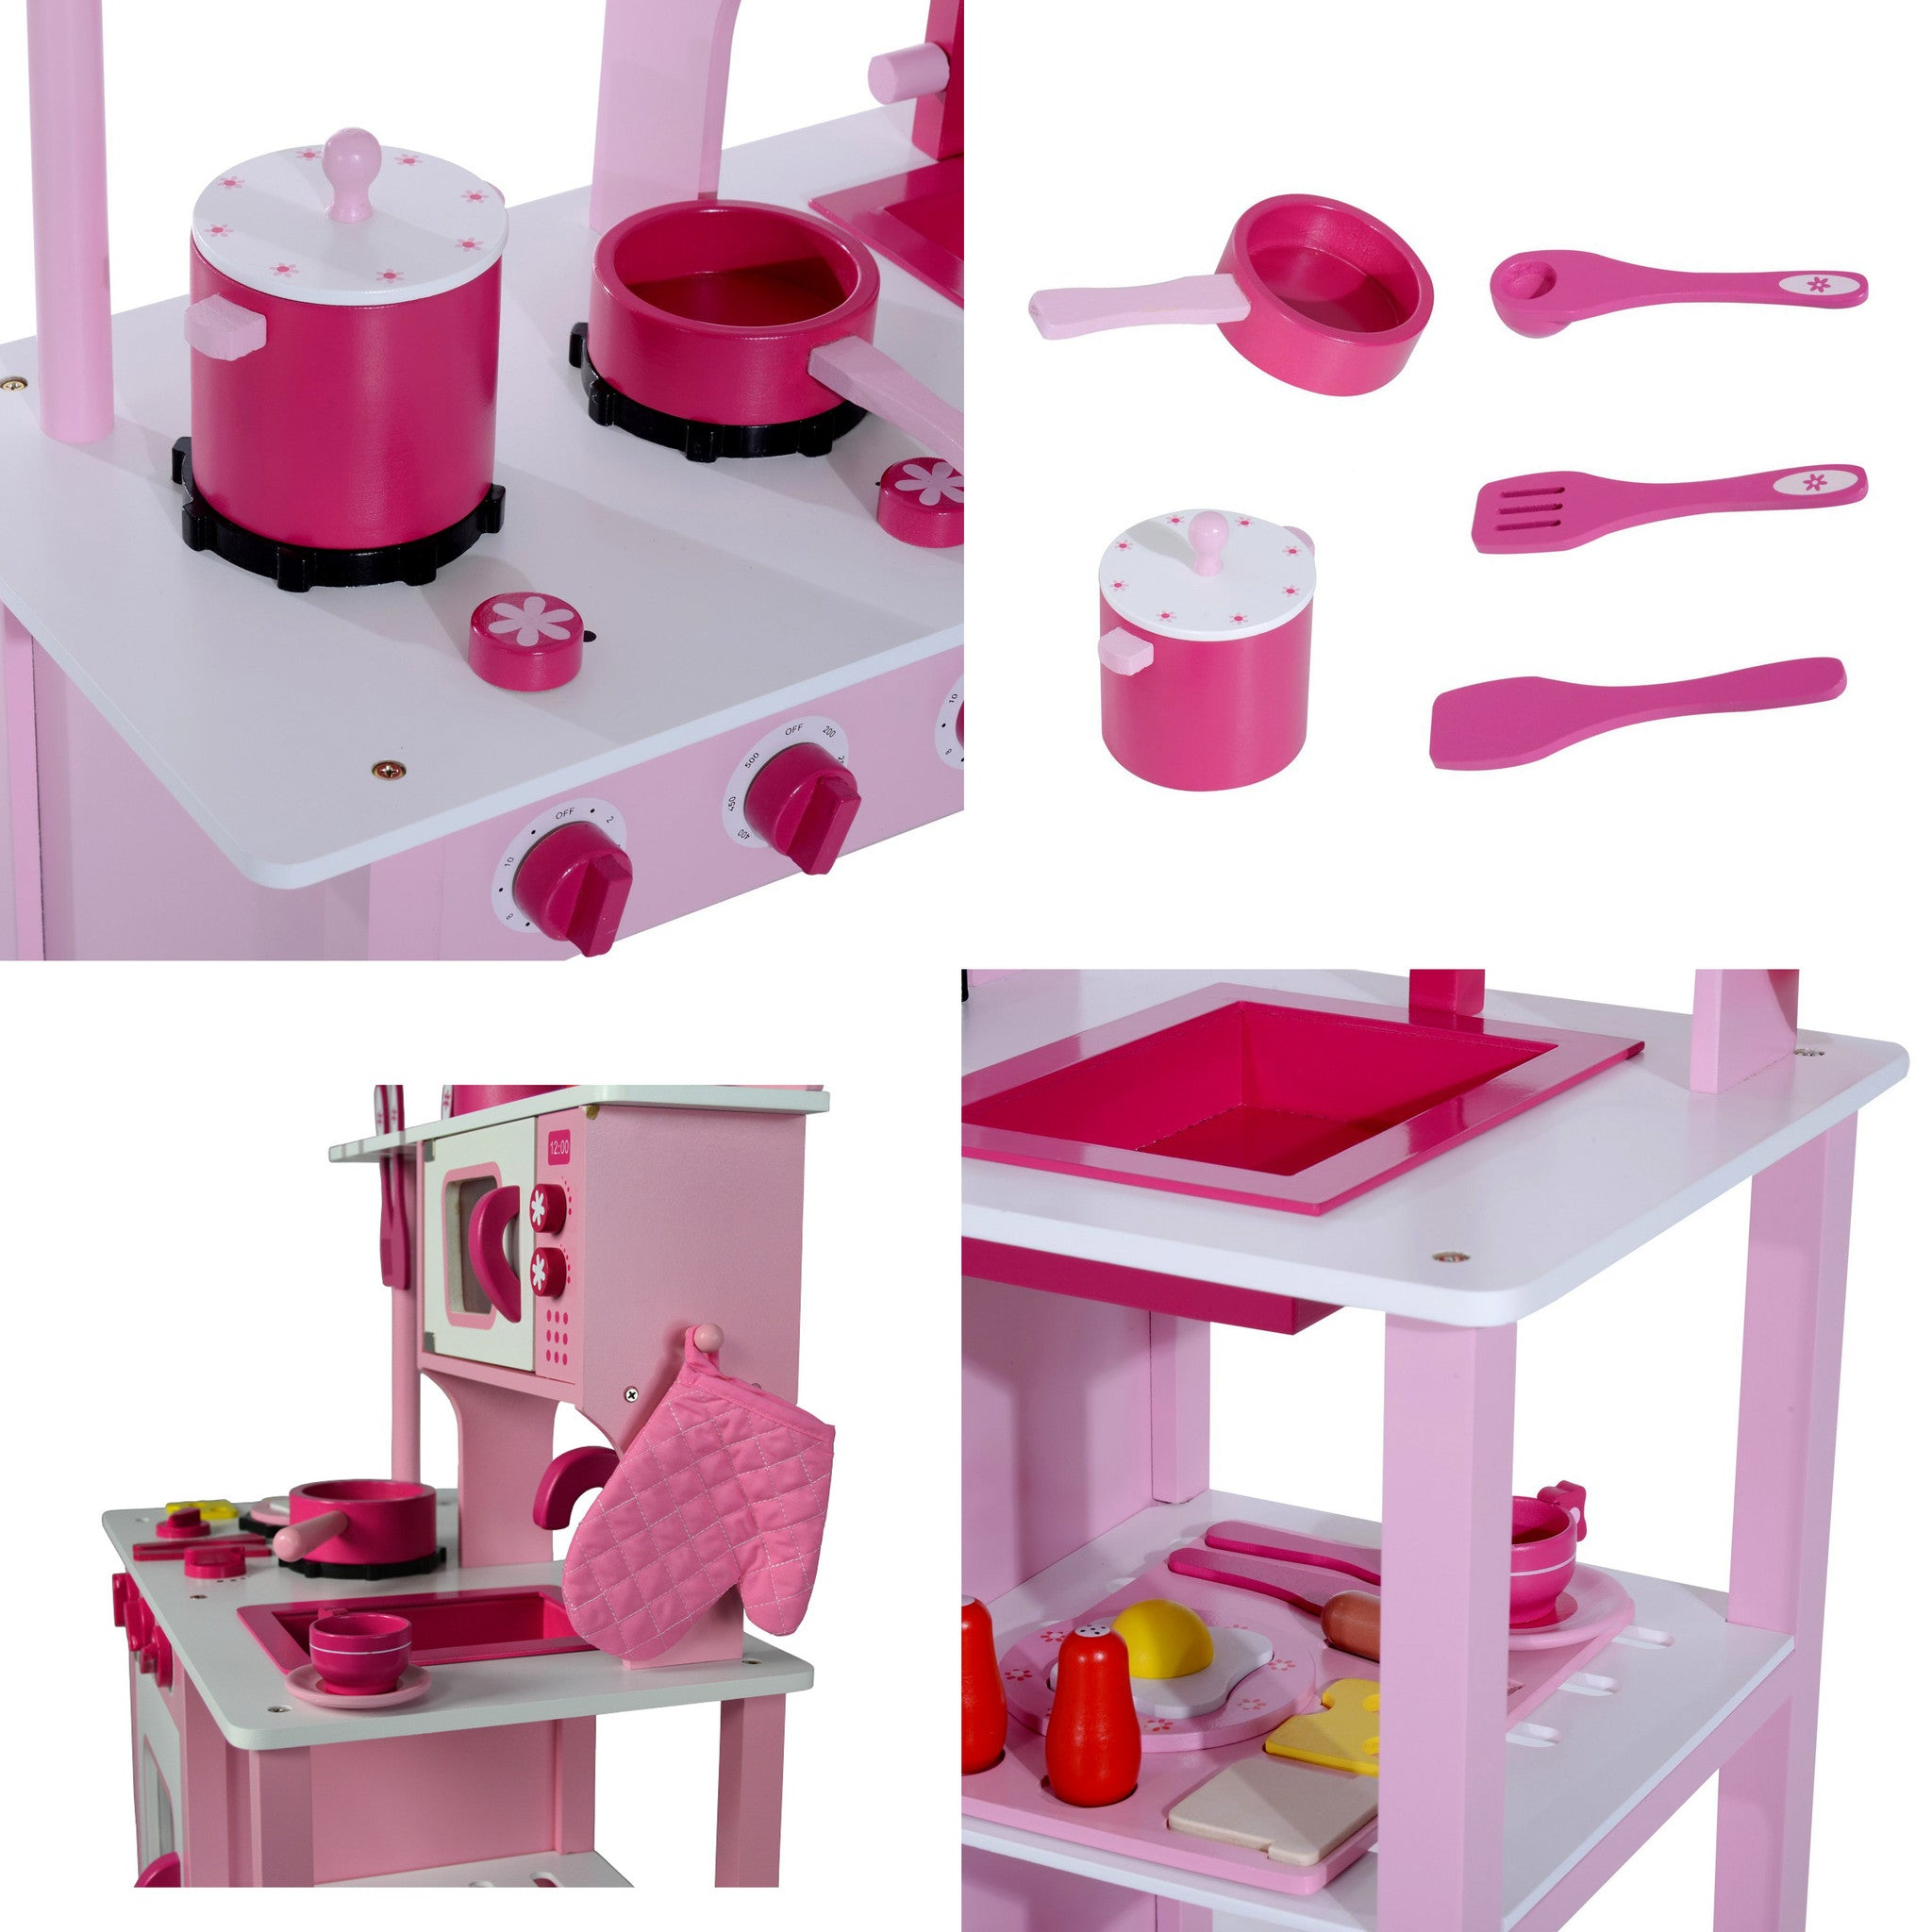 Wooden Kitchen Pretend Play Toy Stove Oven Microwave Cooking Set